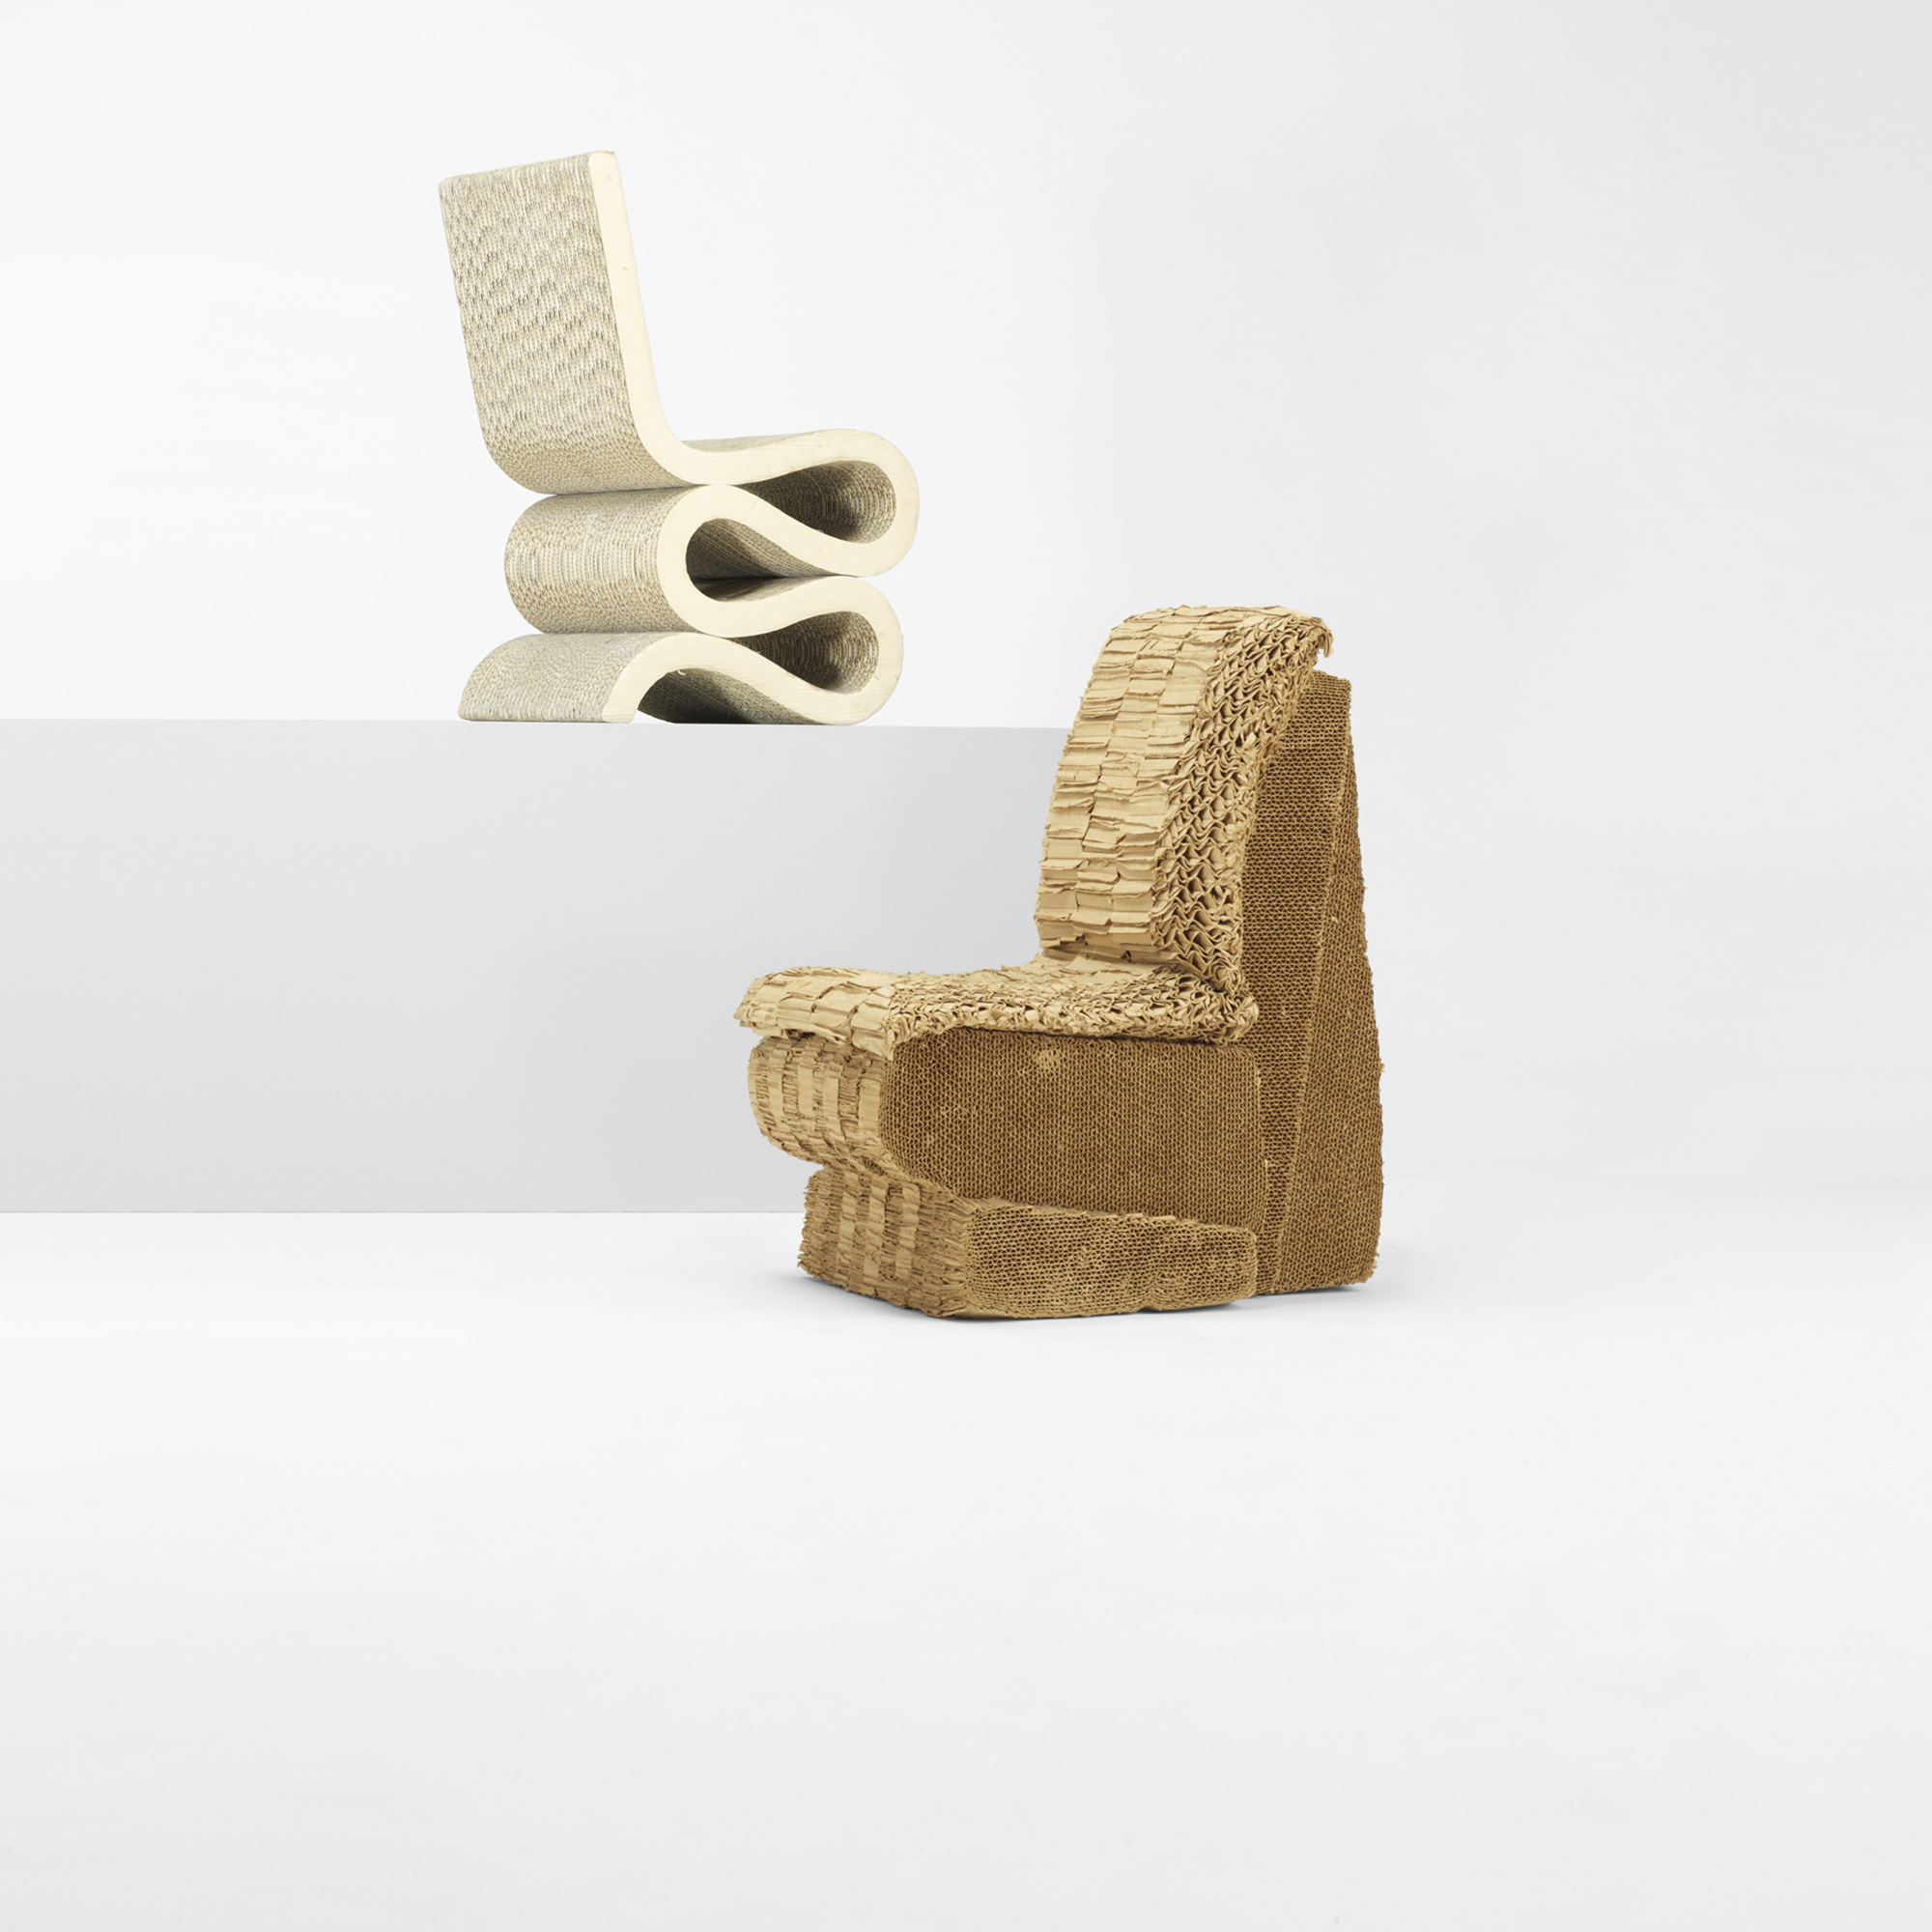 Home Designs October 2012: 133: FRANK GEHRY, Sitting Beaver Chair